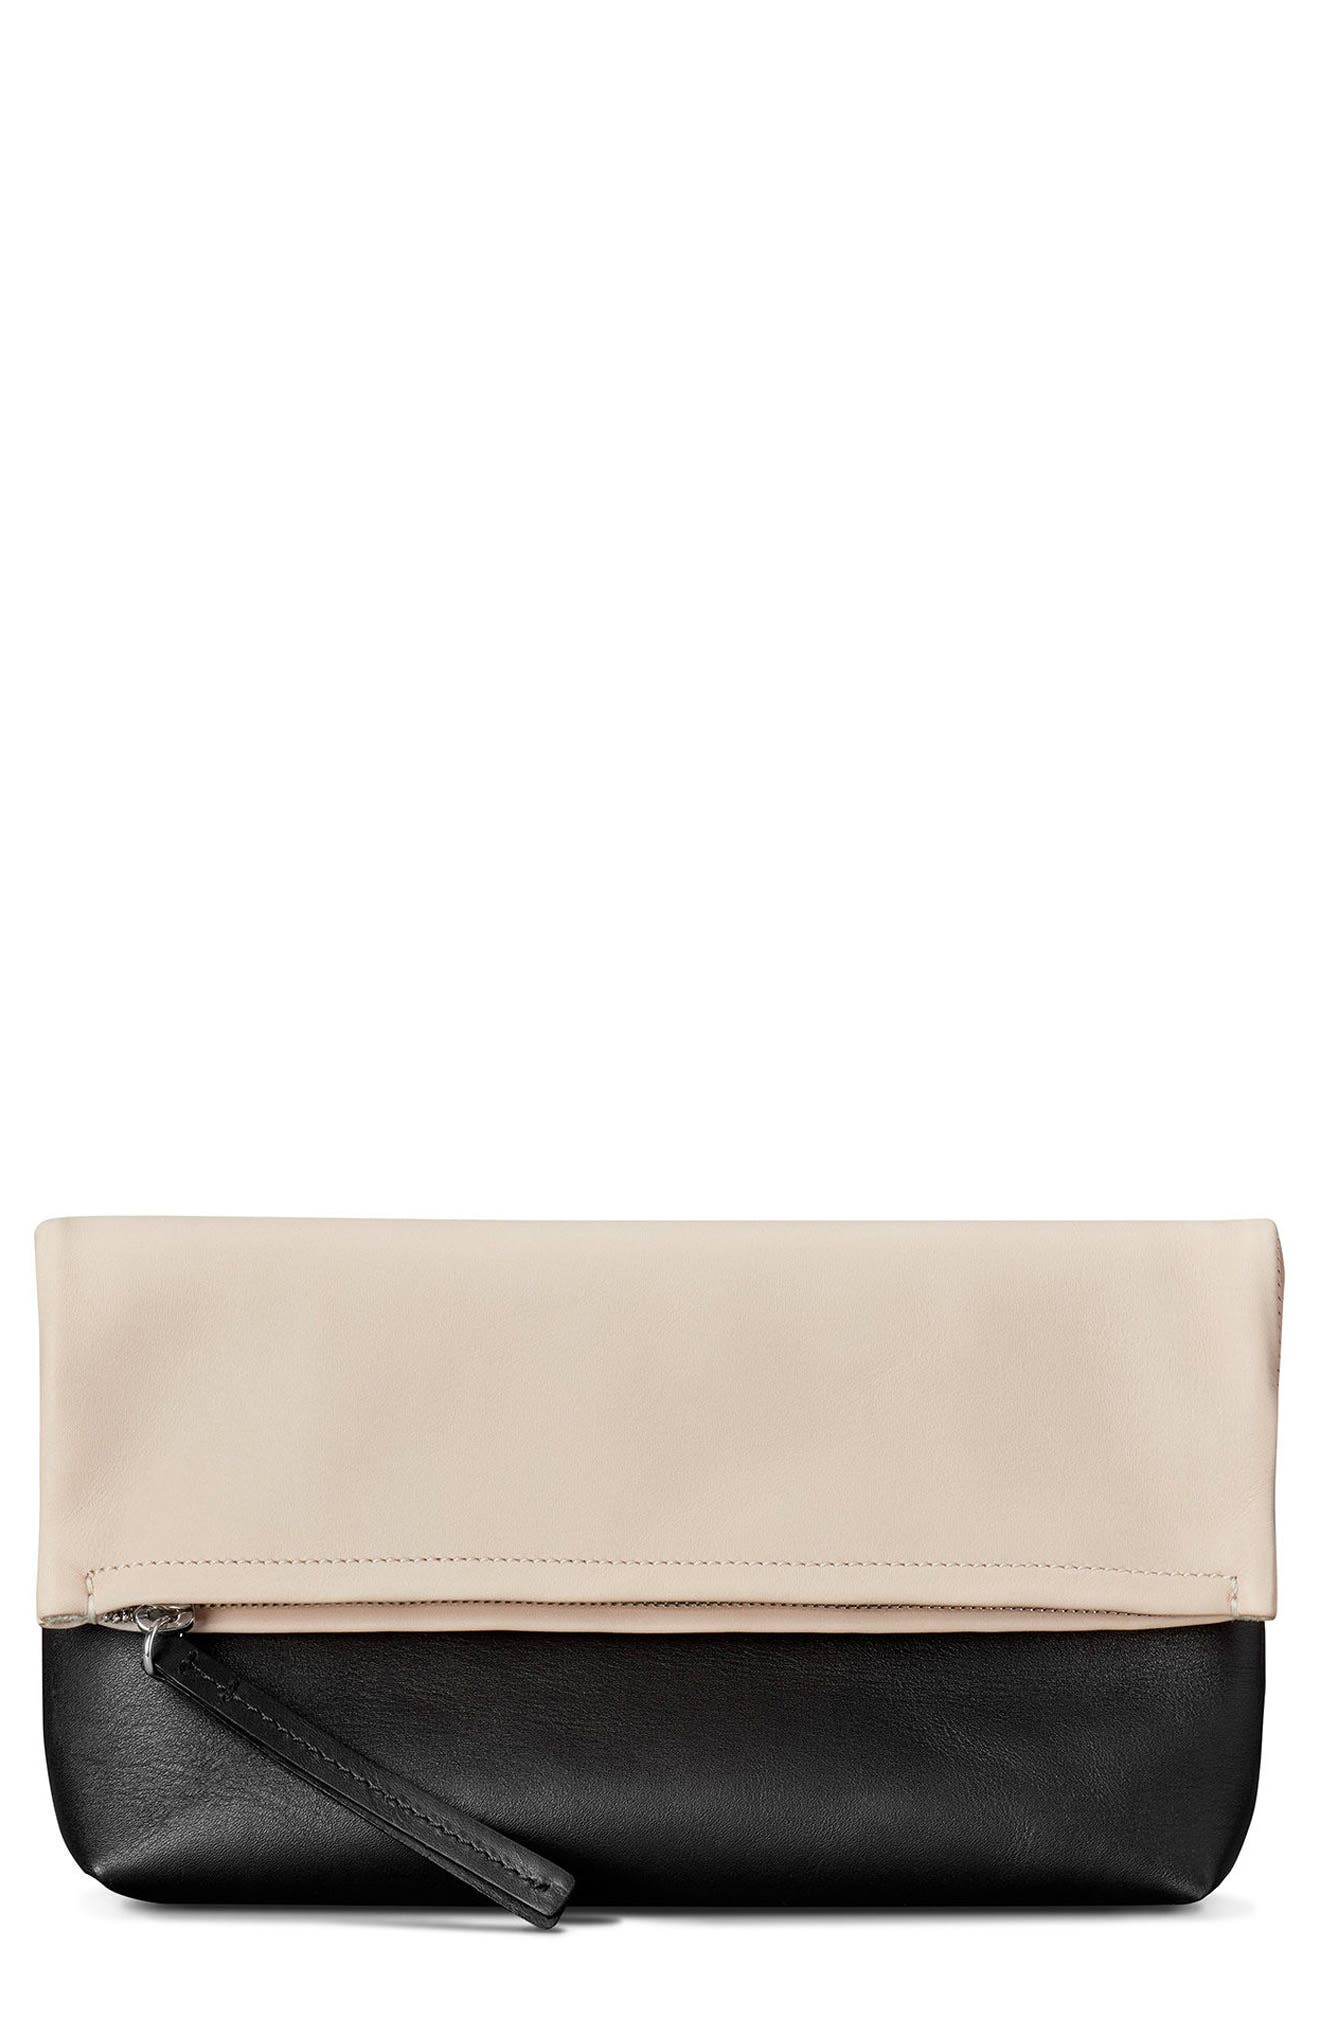 Birdy Leather Foldover Clutch,                             Main thumbnail 1, color,                             Soft Blush Black